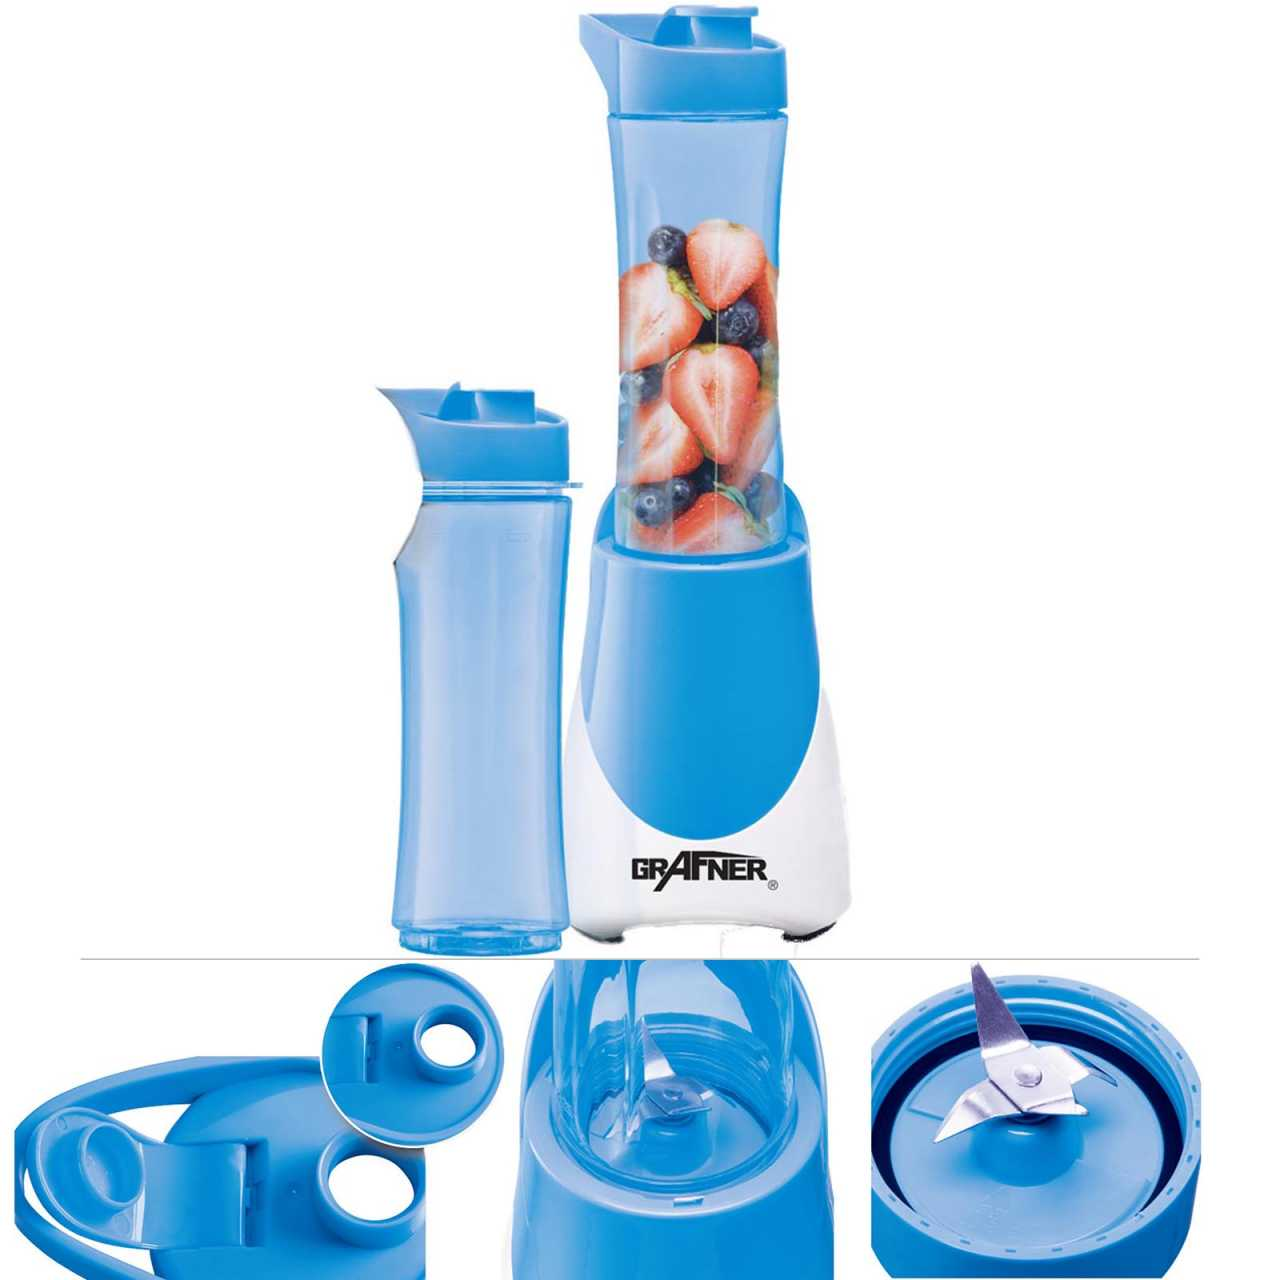 Grafner® Smoothie Maker inkl. 2x 600ml Trinkflasche to go Shaker Standmixer Mixer blau